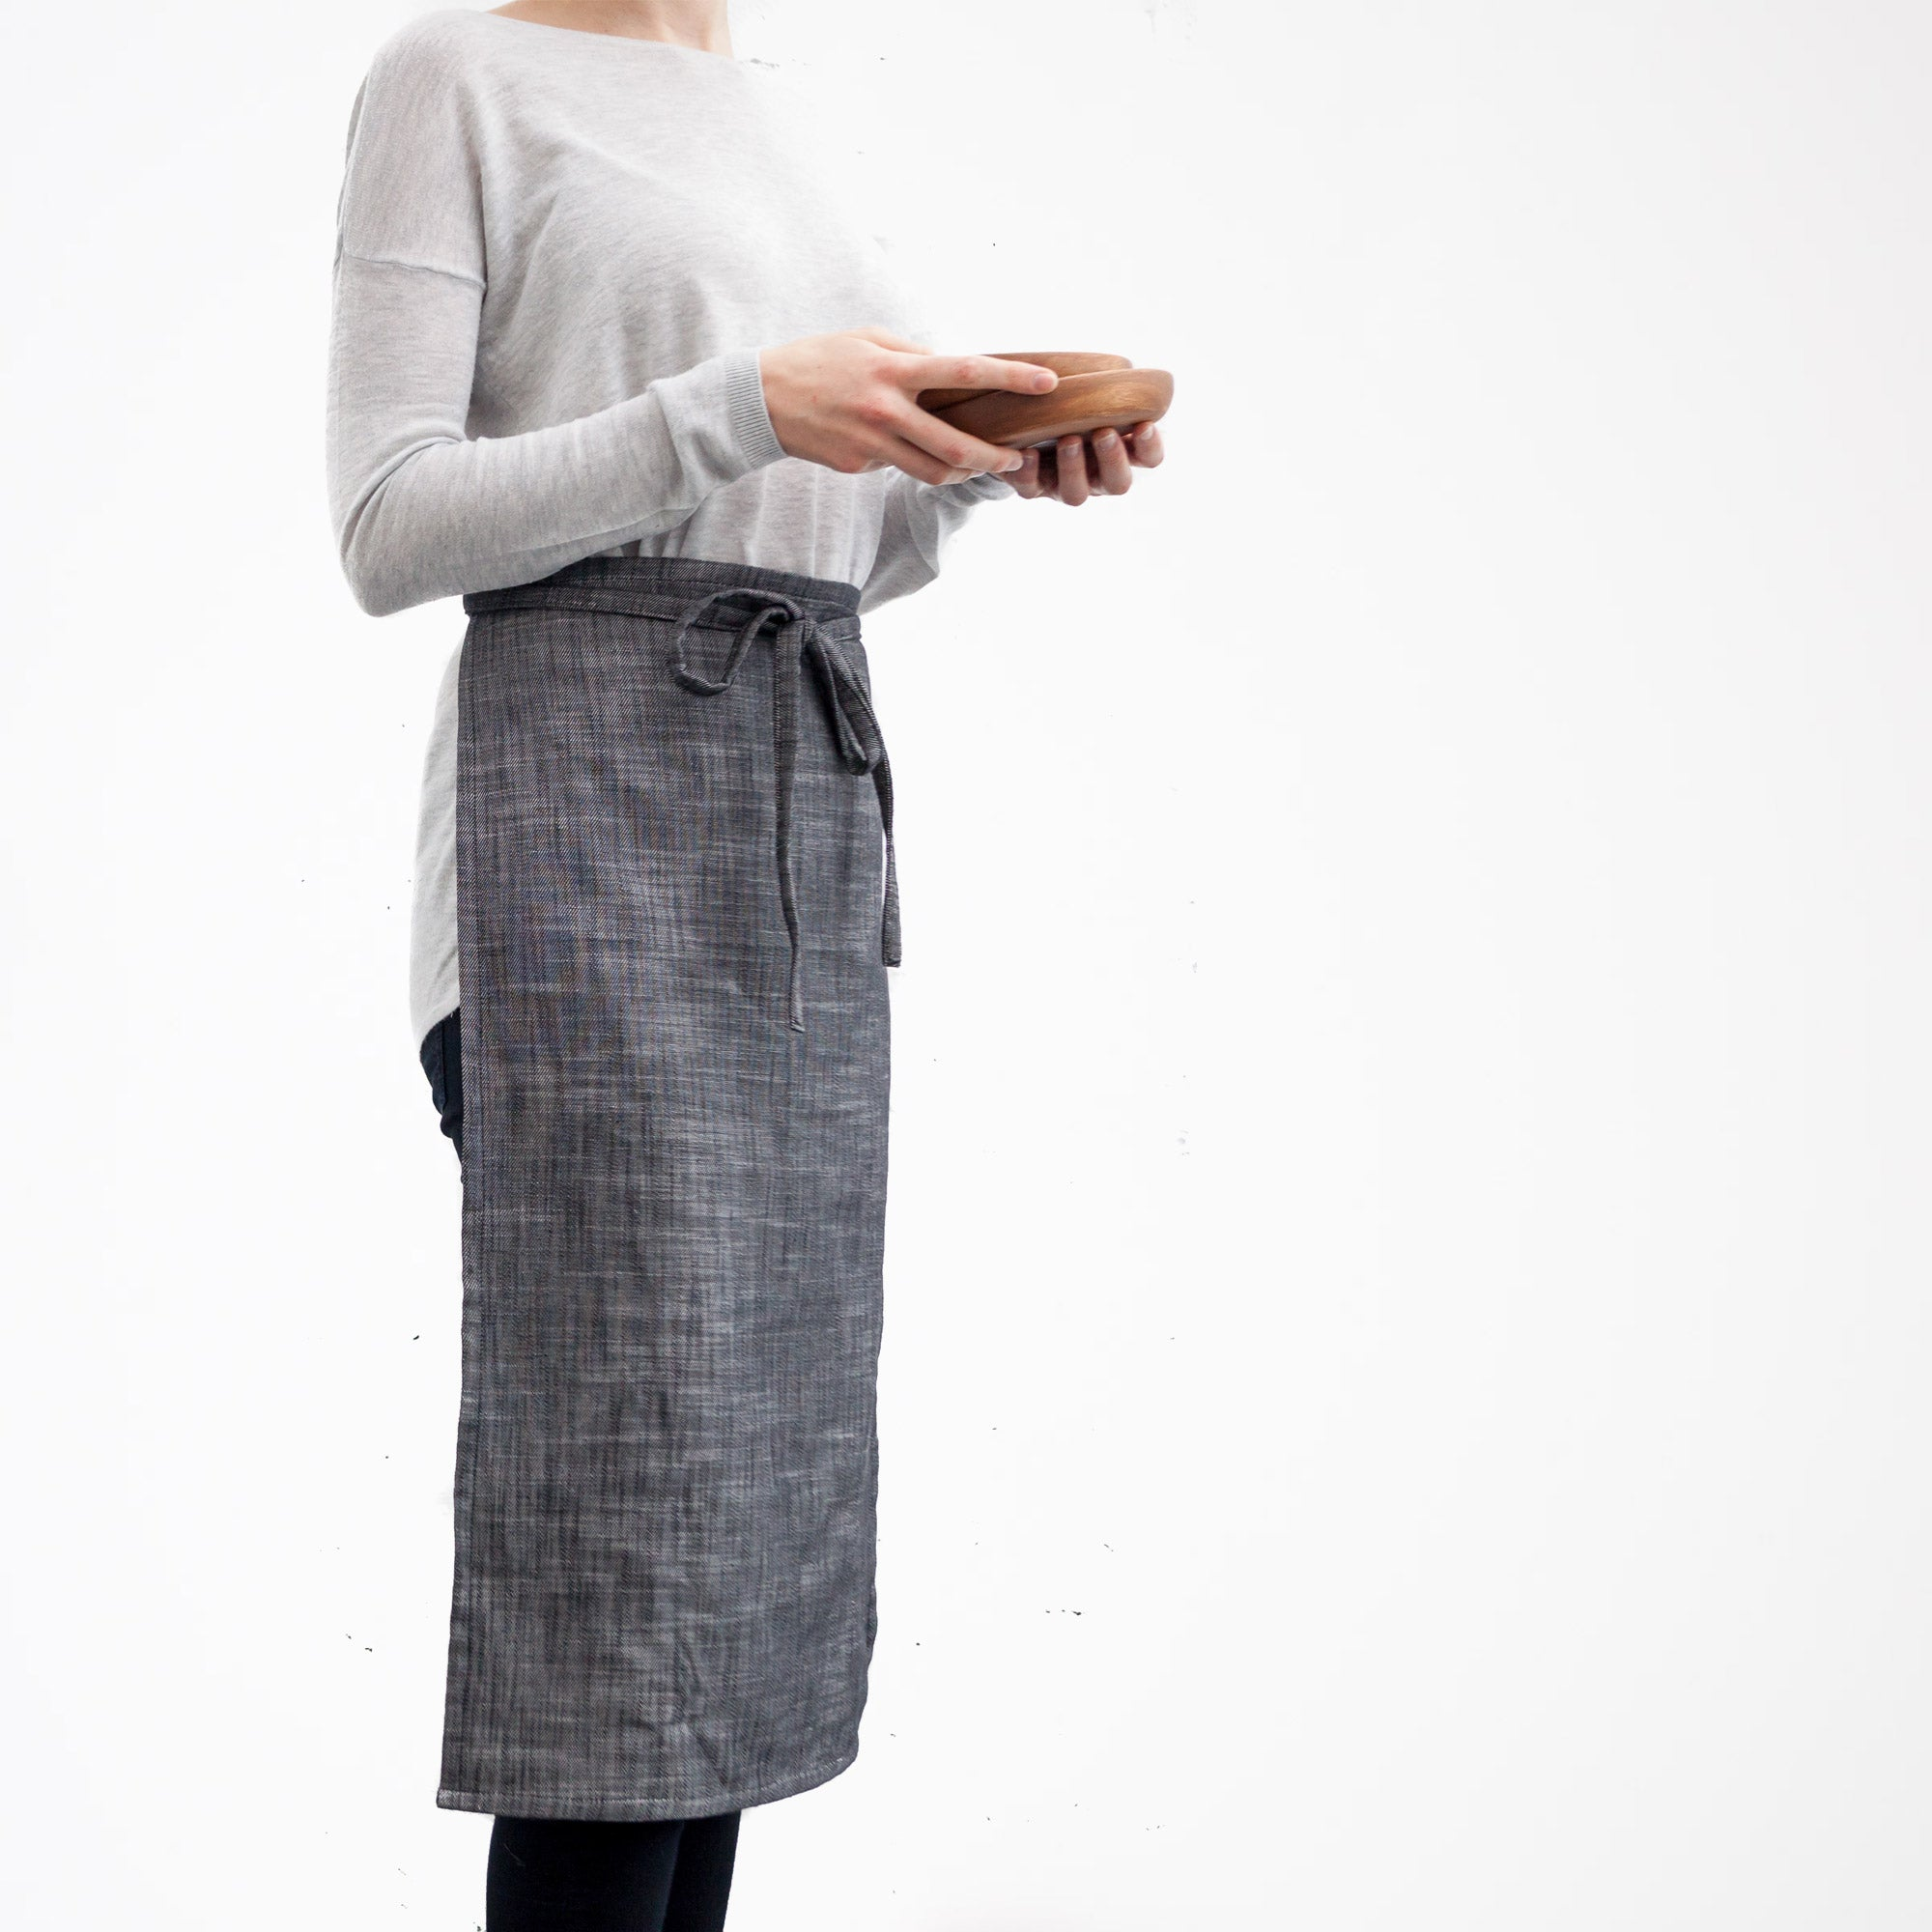 Reversible Dish Towel Apron - Handmade in 100% Cotton - Sold by Chic & Basta